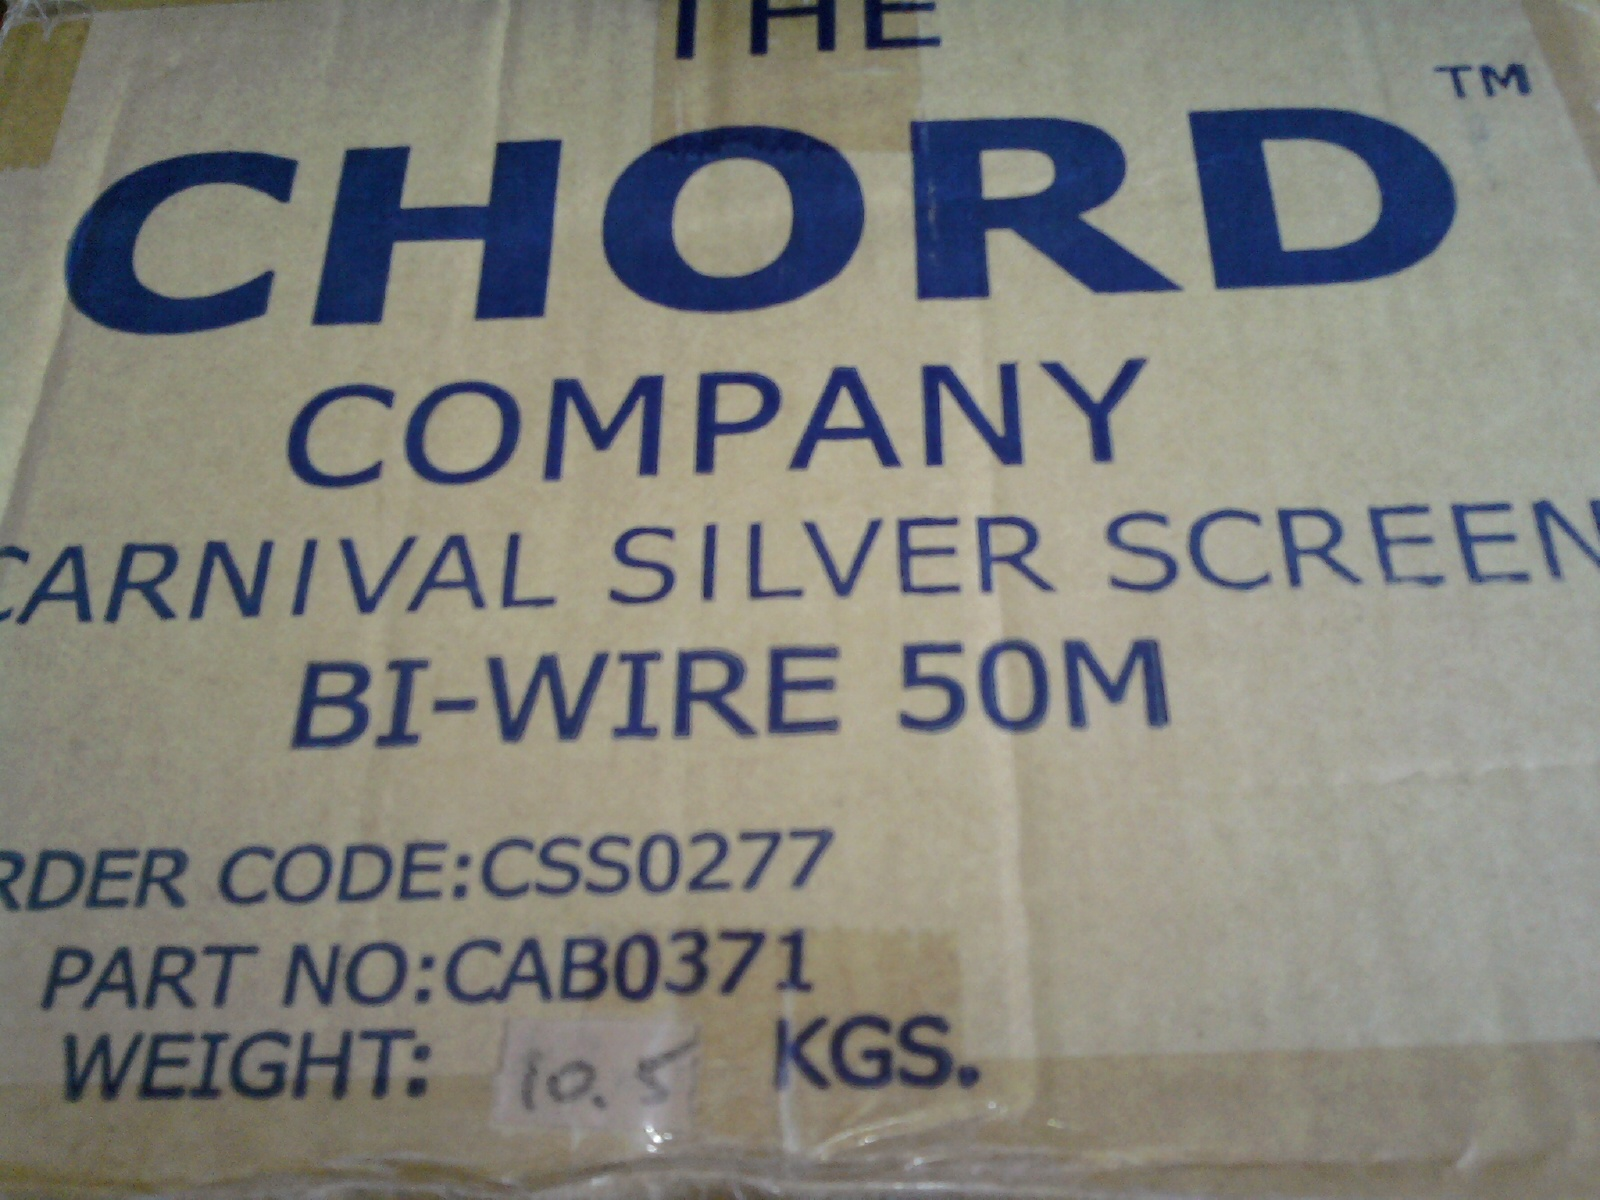 Chord Carnival Silver Screen biwire speaker cable